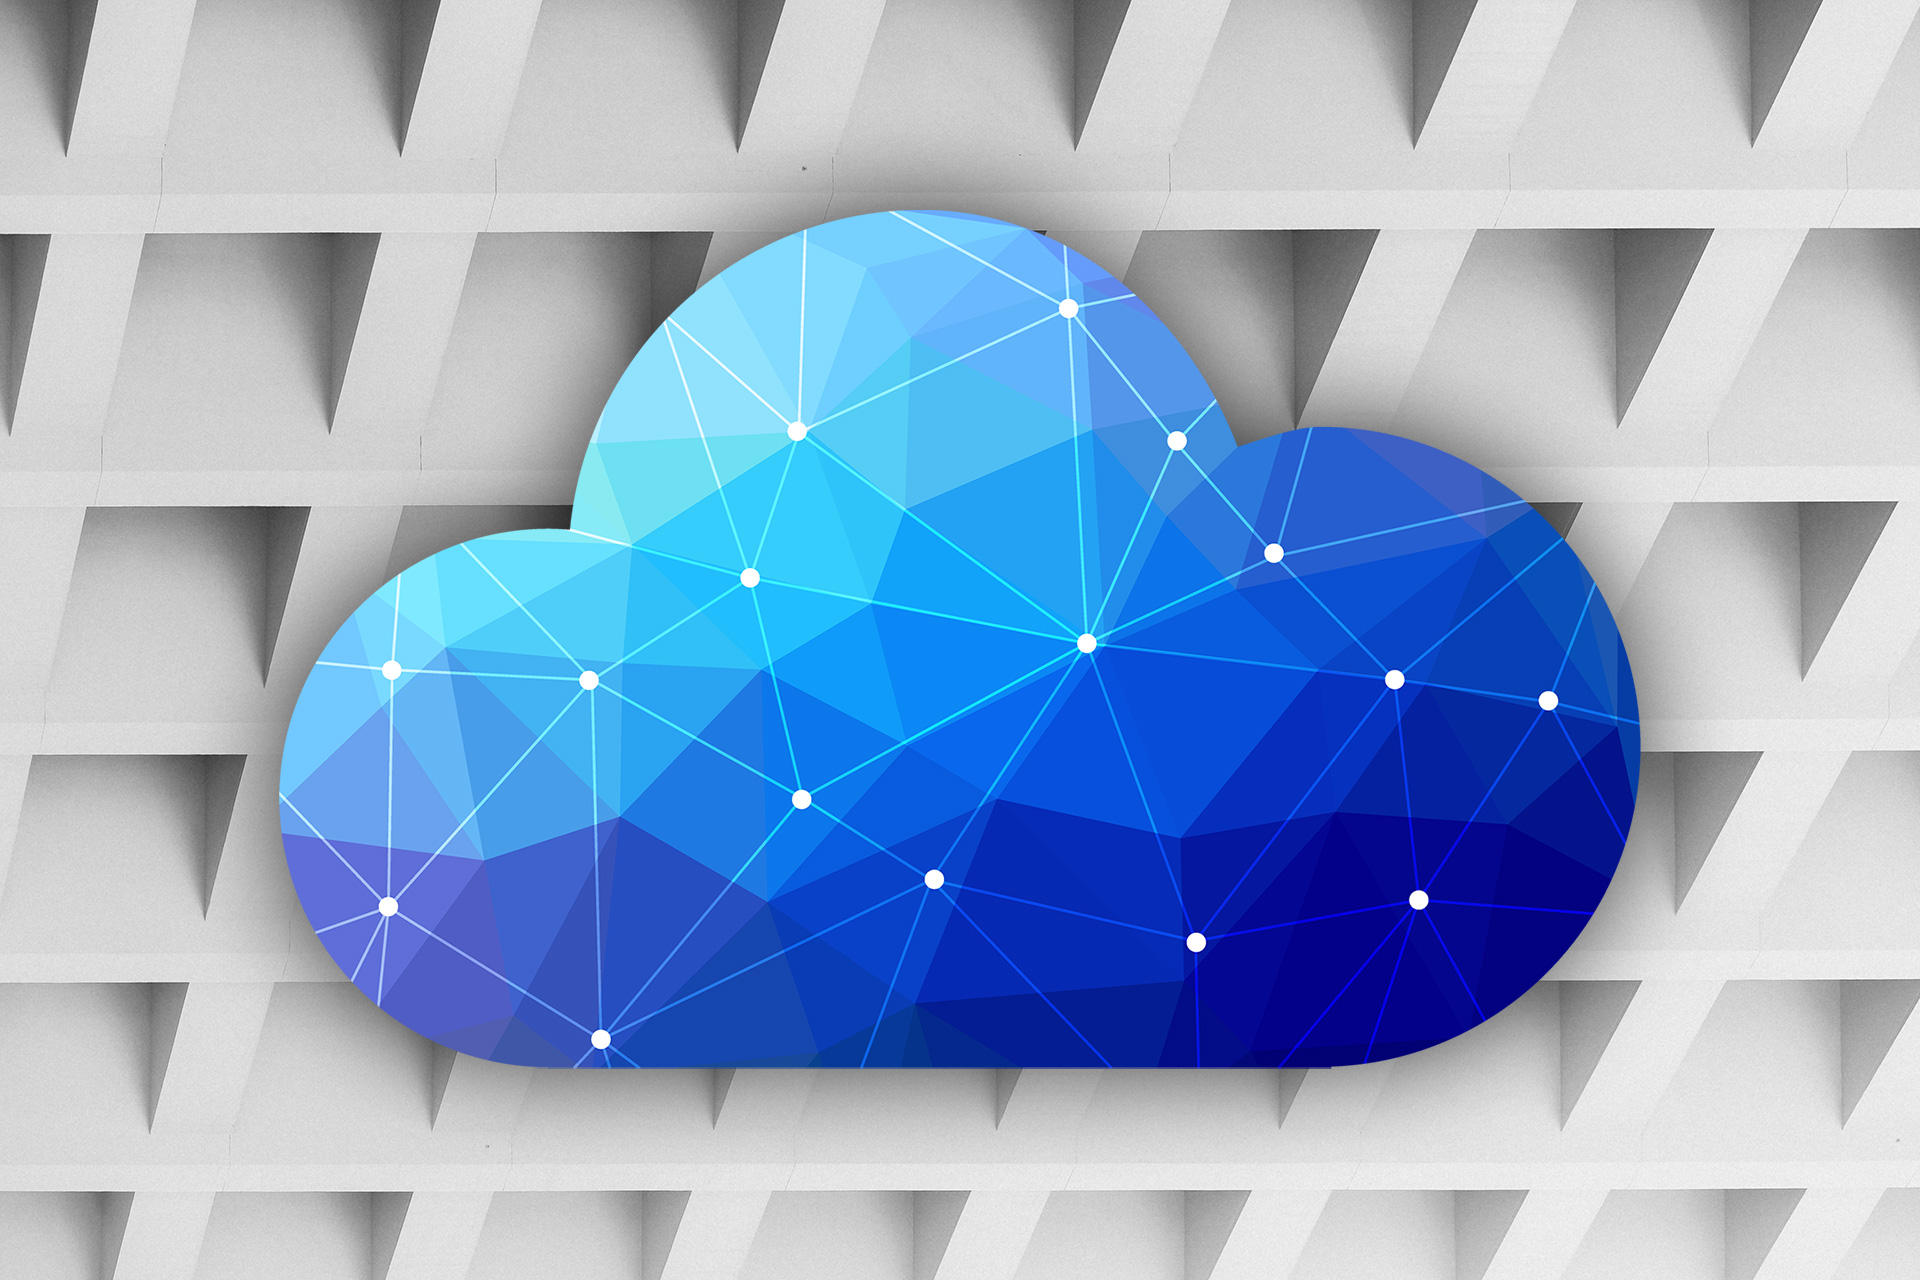 70% of organizations experienced a public cloud security incident in the last year